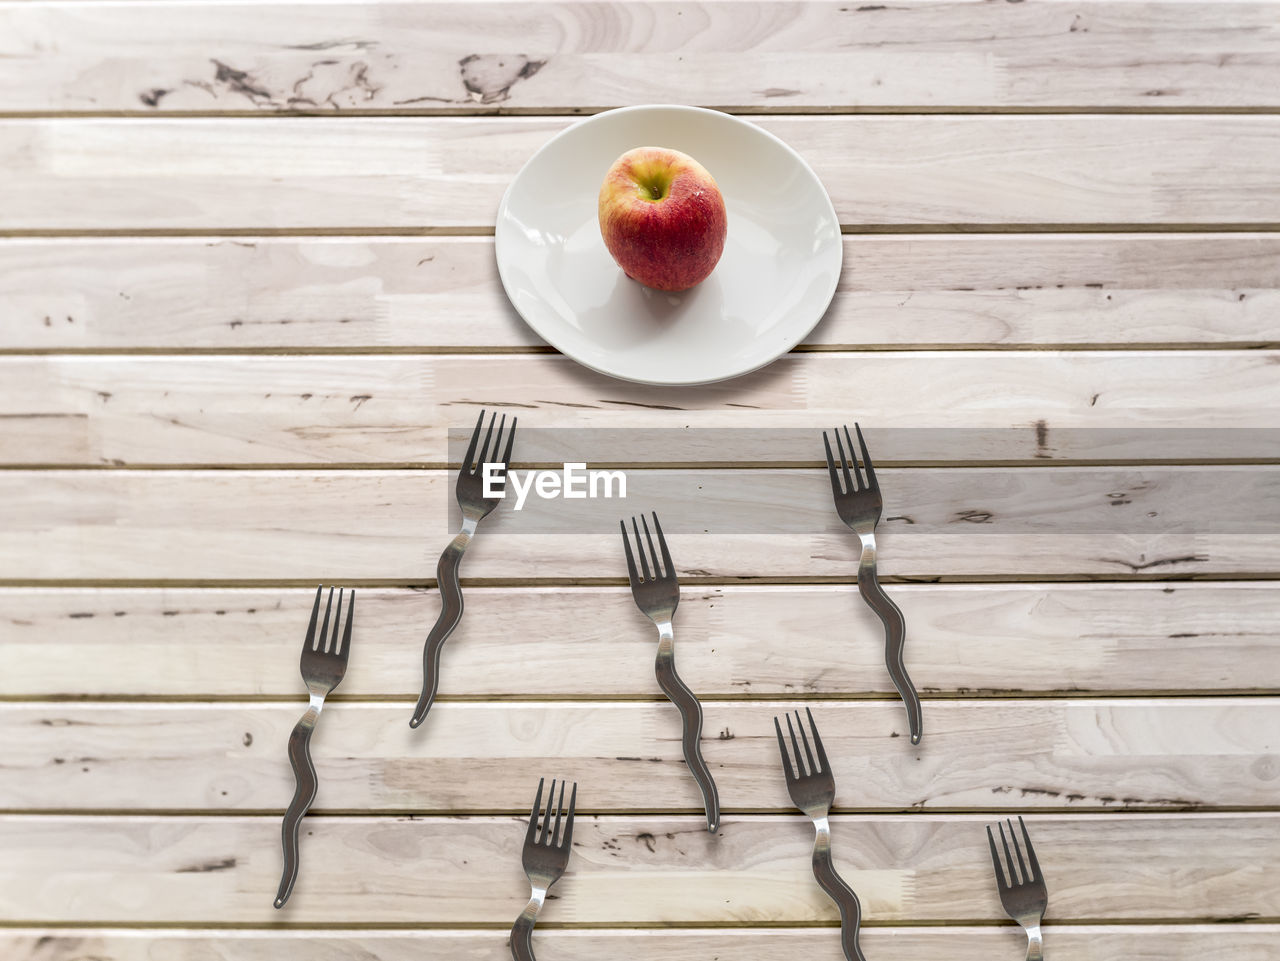 kitchen utensil, eating utensil, fork, table, wood - material, food and drink, food, freshness, still life, high angle view, indoors, plate, directly above, wellbeing, fruit, no people, healthy eating, household equipment, spoon, refreshment, table knife, breakfast, crockery, temptation